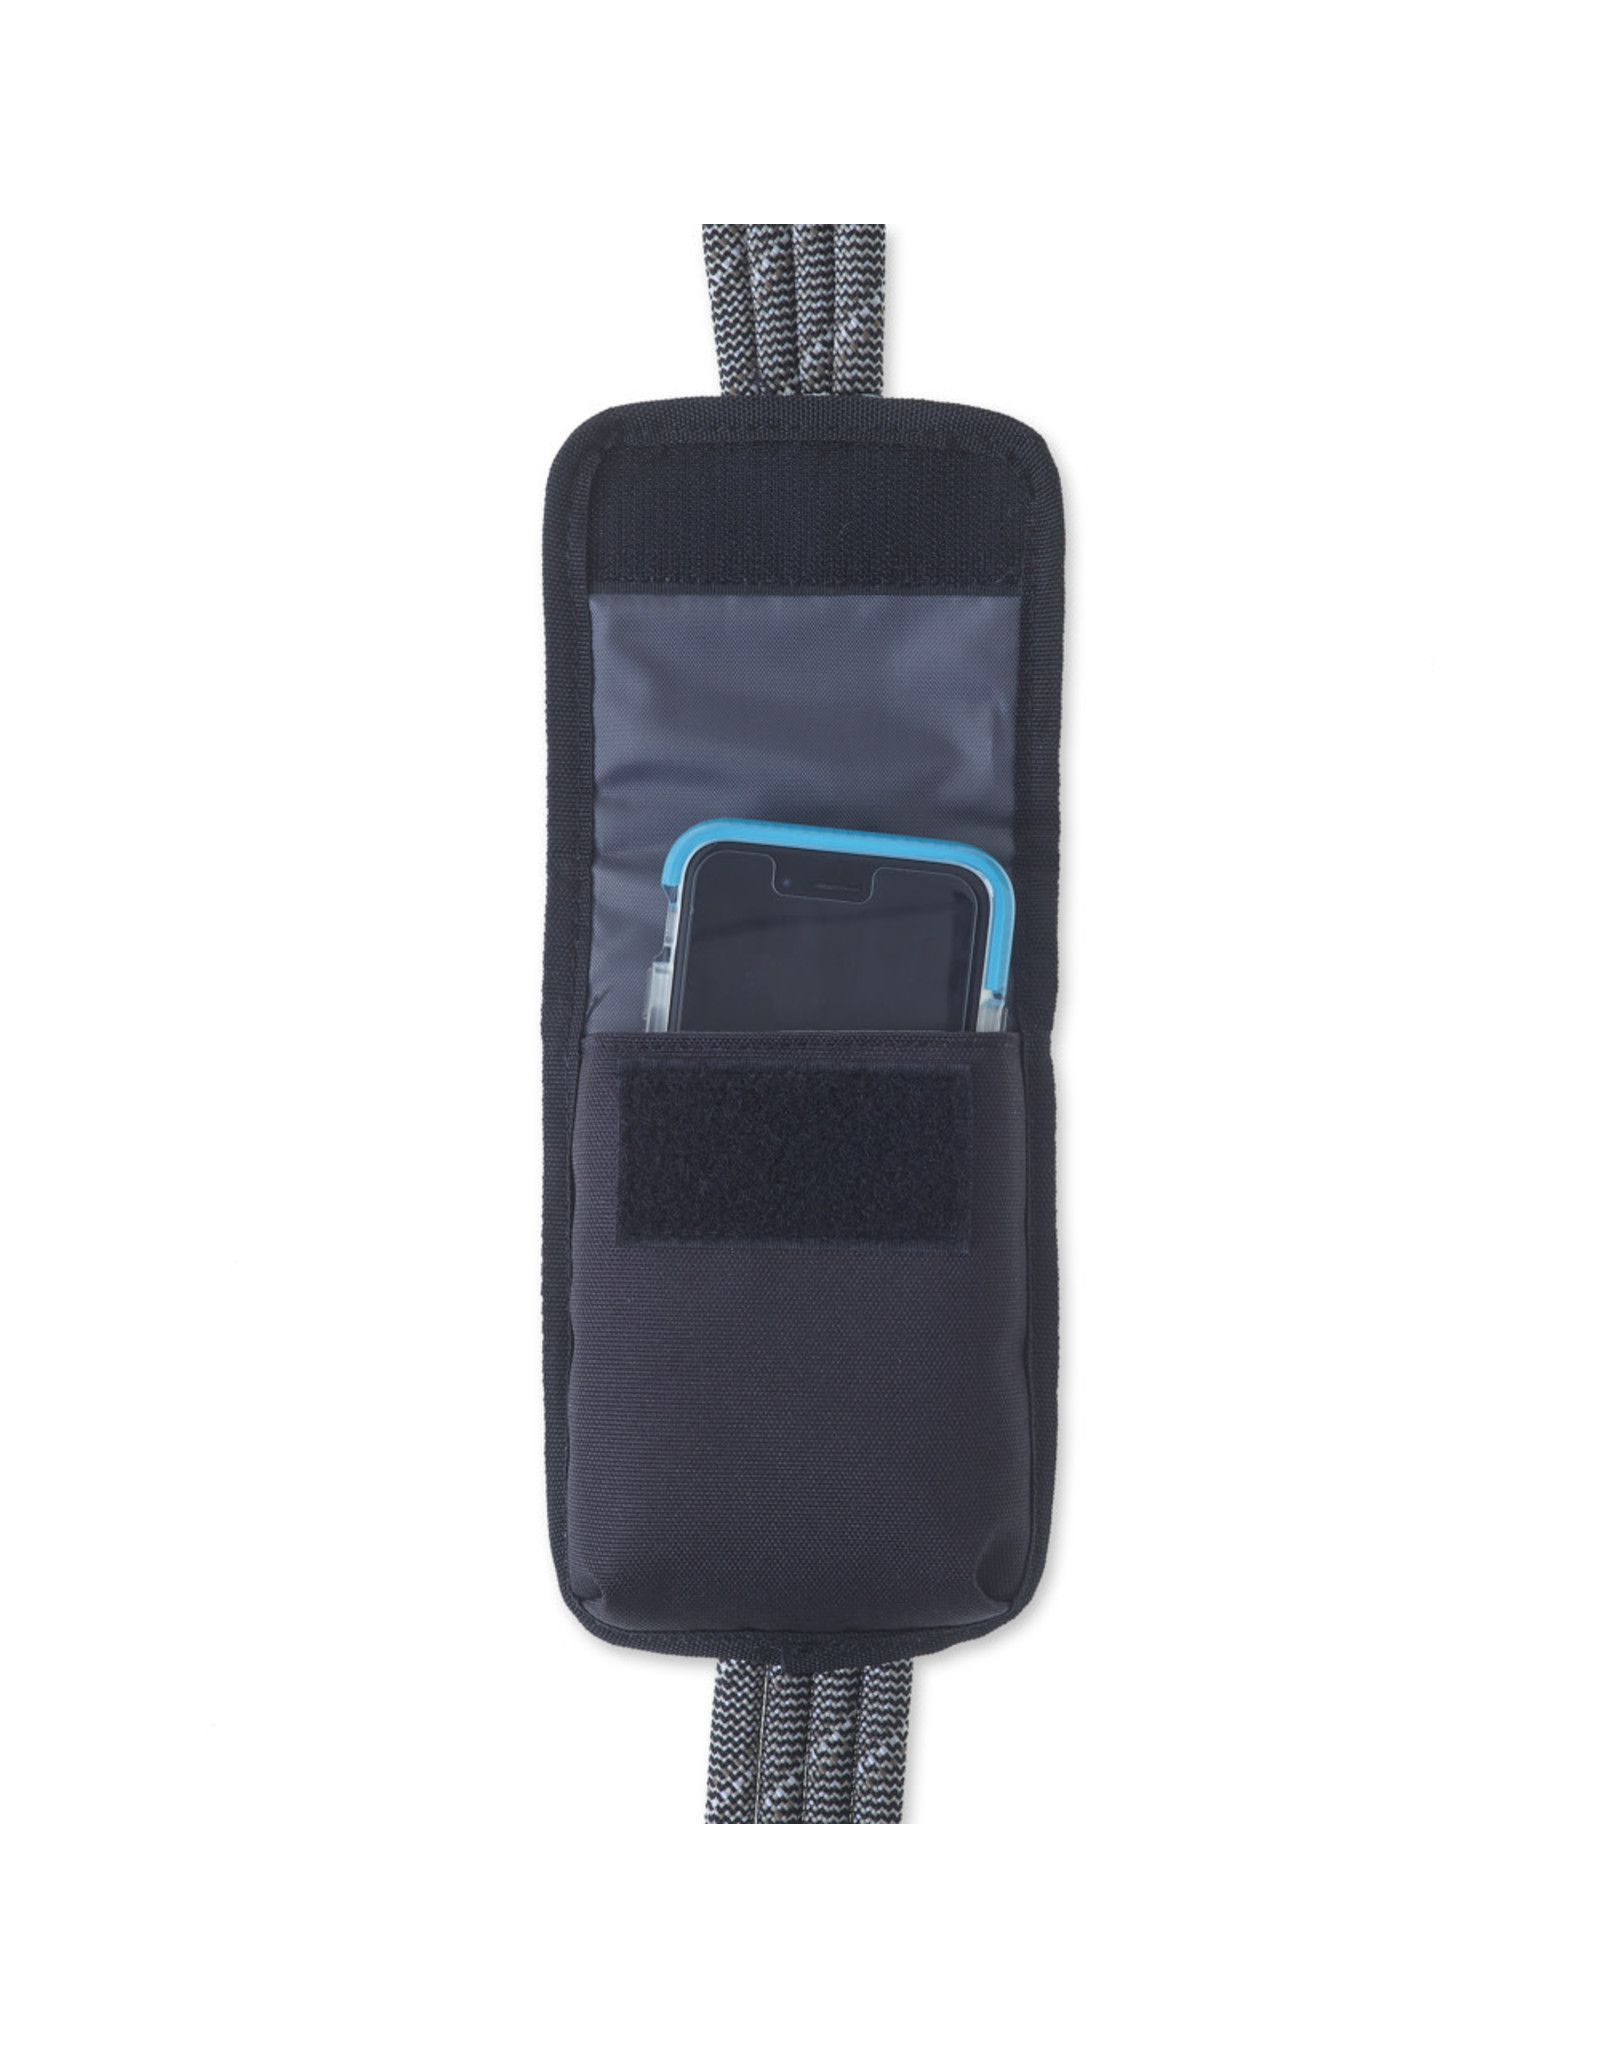 Kavu Phone Booth - Jet Black